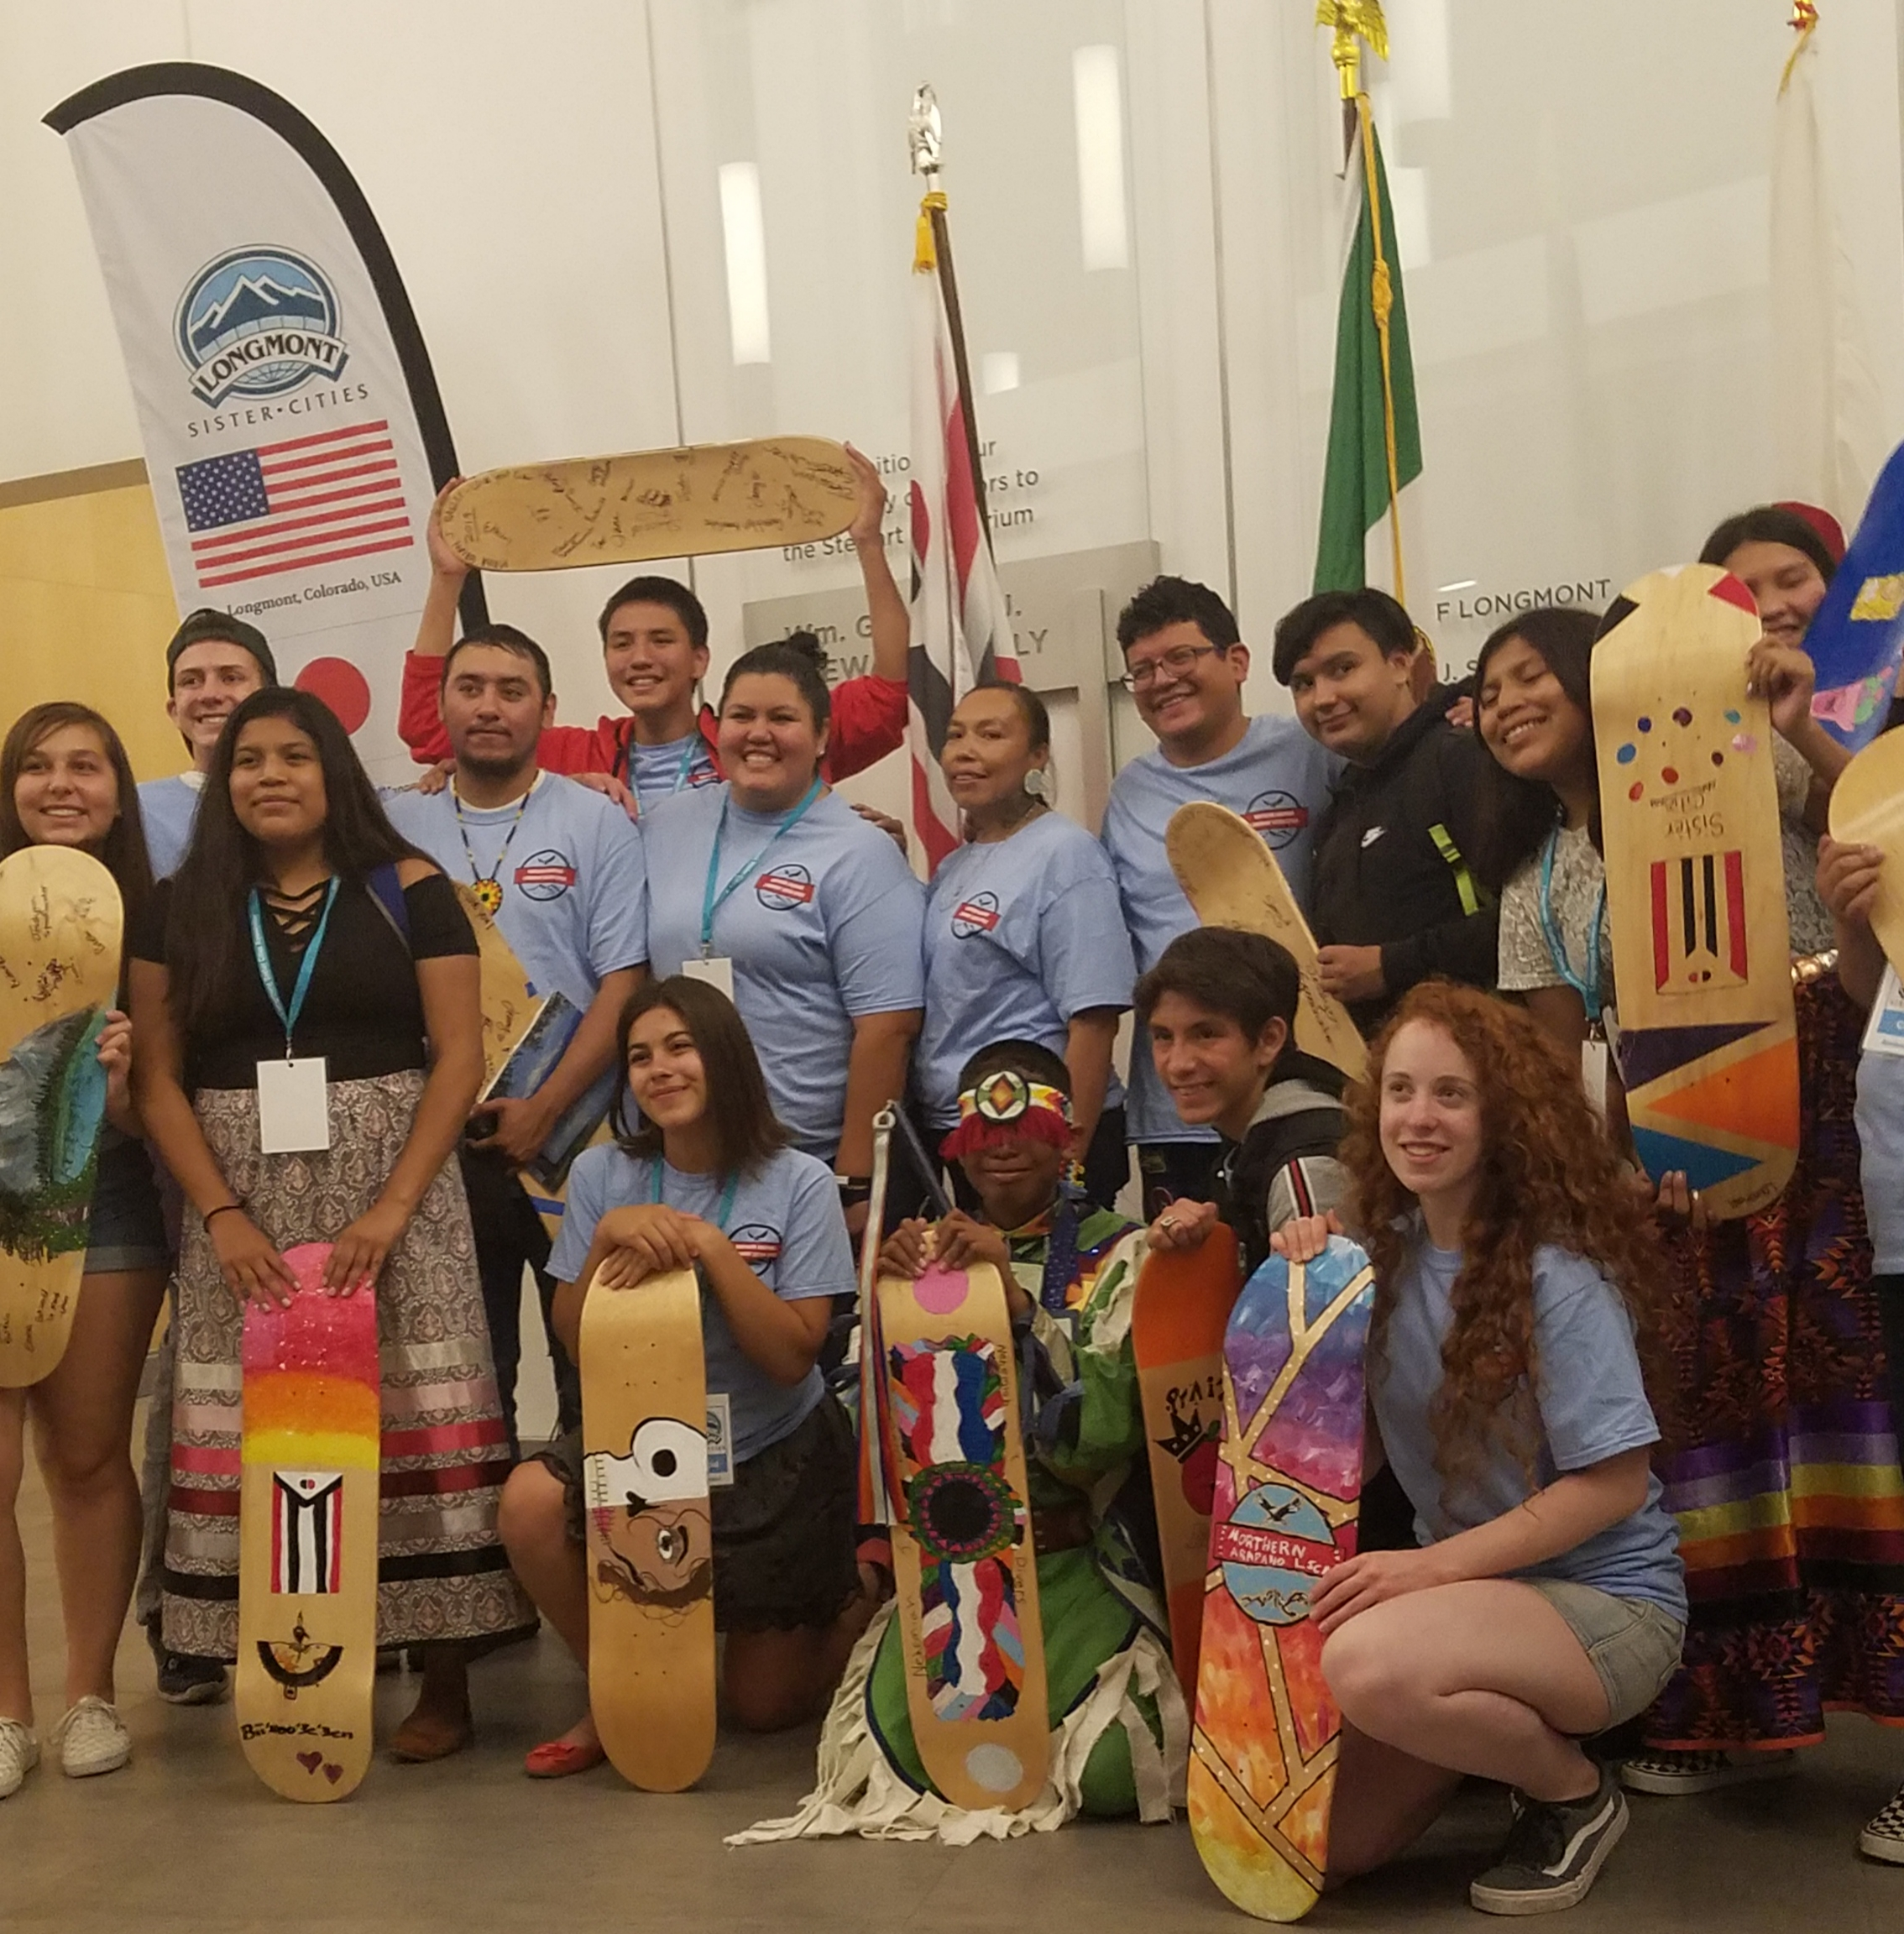 First-ever Arapaho Youth Exchange in Longmont!